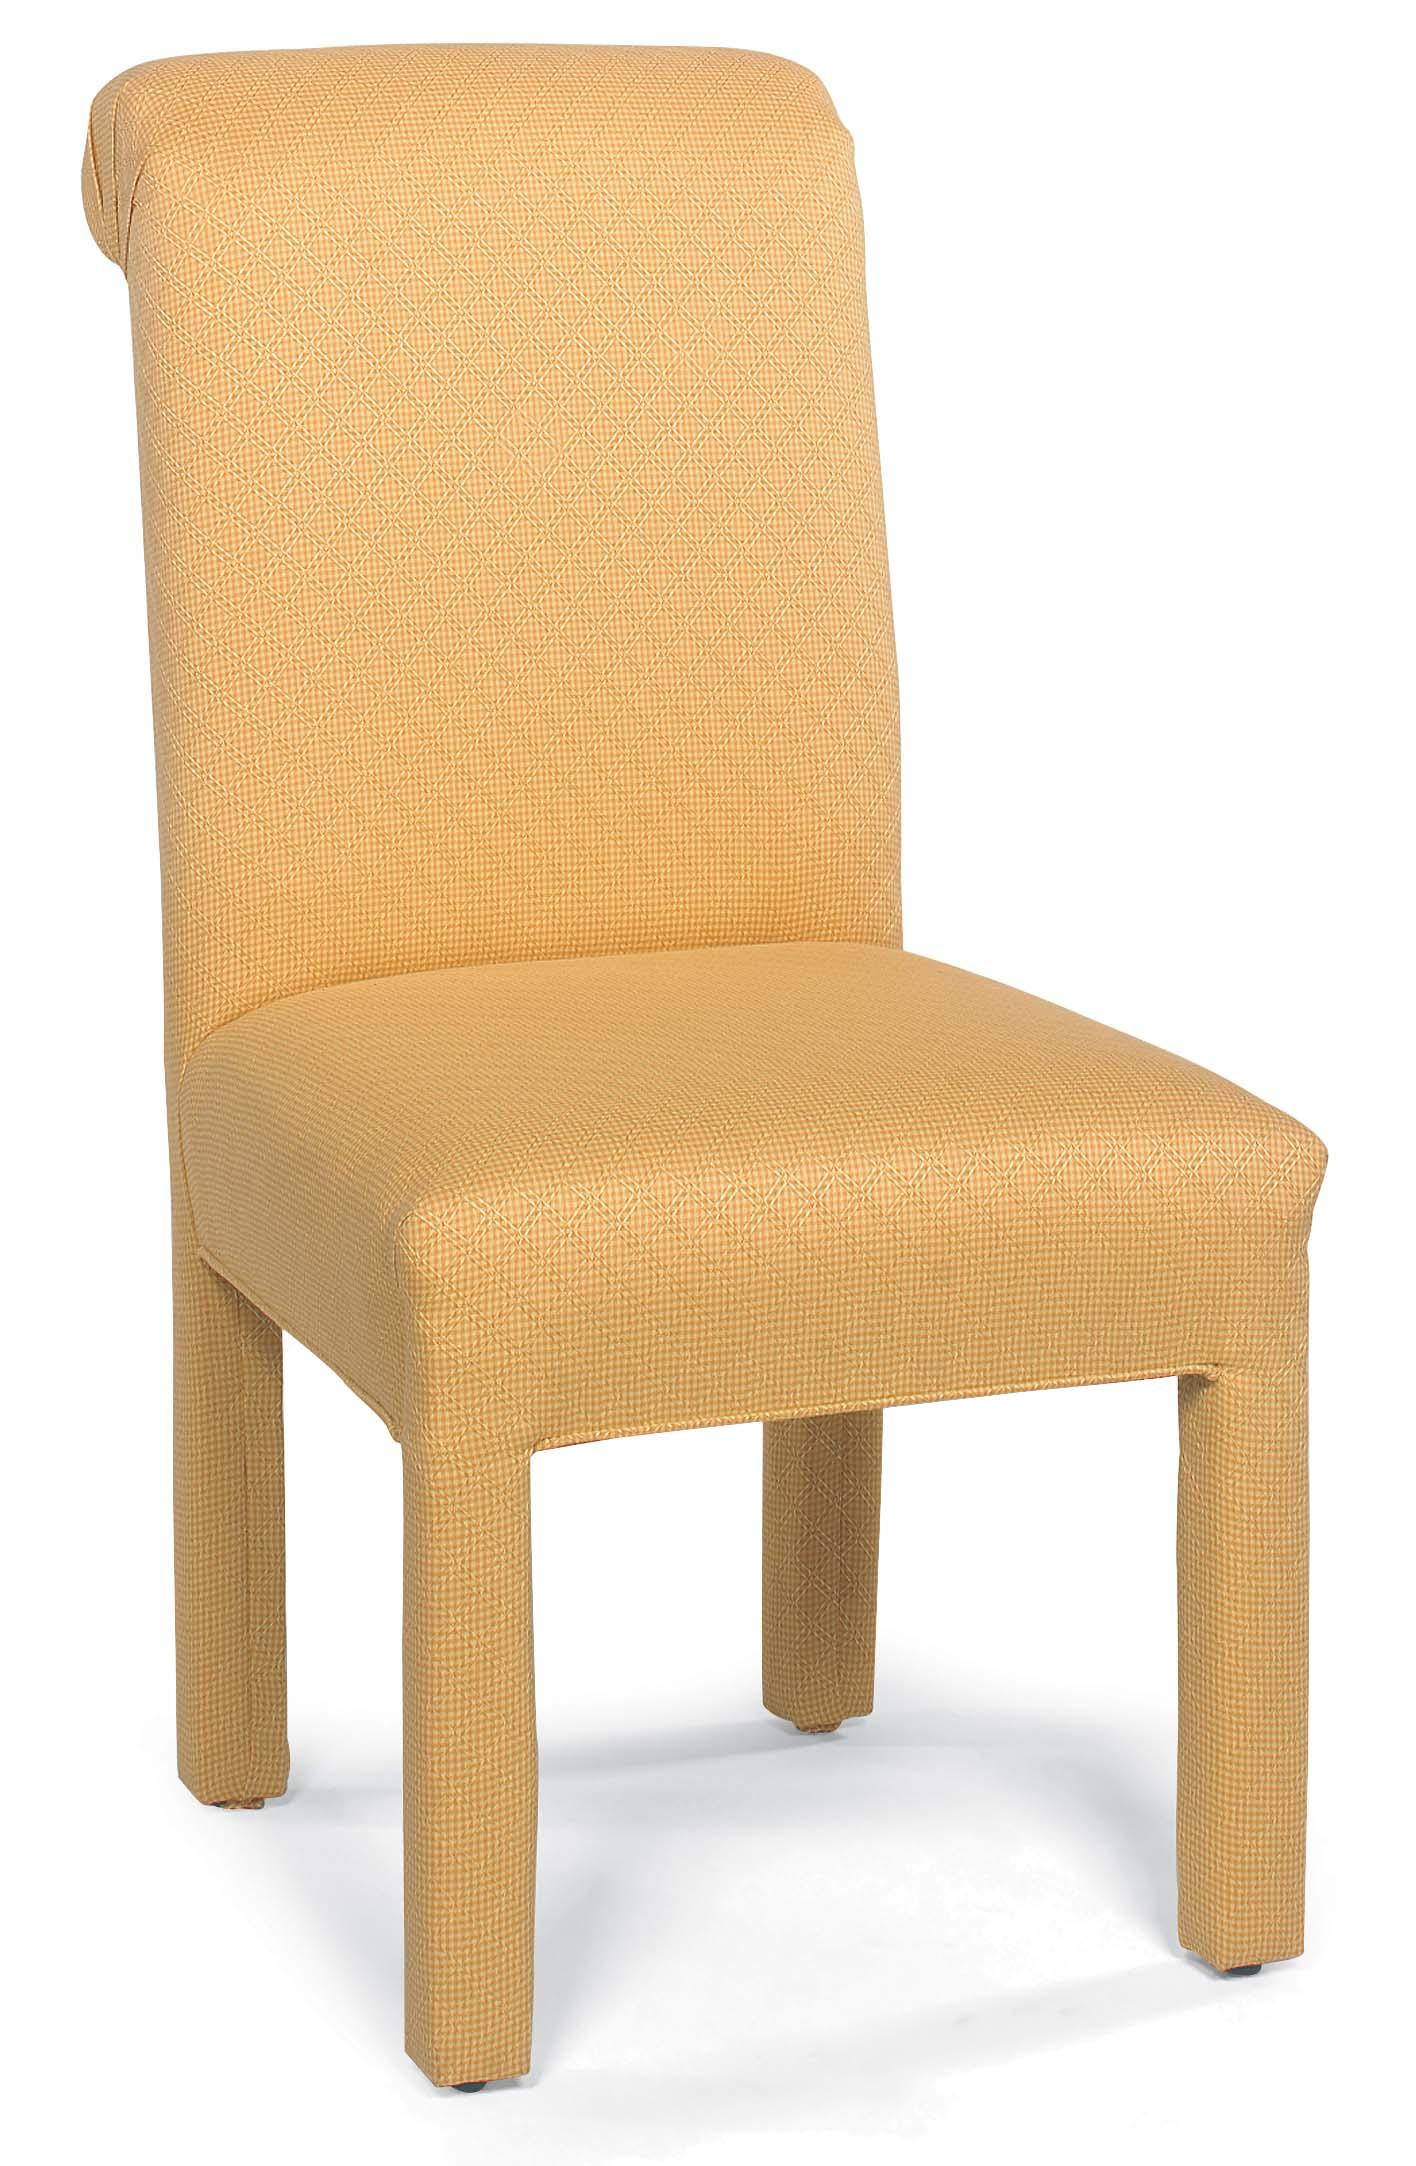 Fairfield Chairs Stationary Armless Chair - Item Number: 6034-01